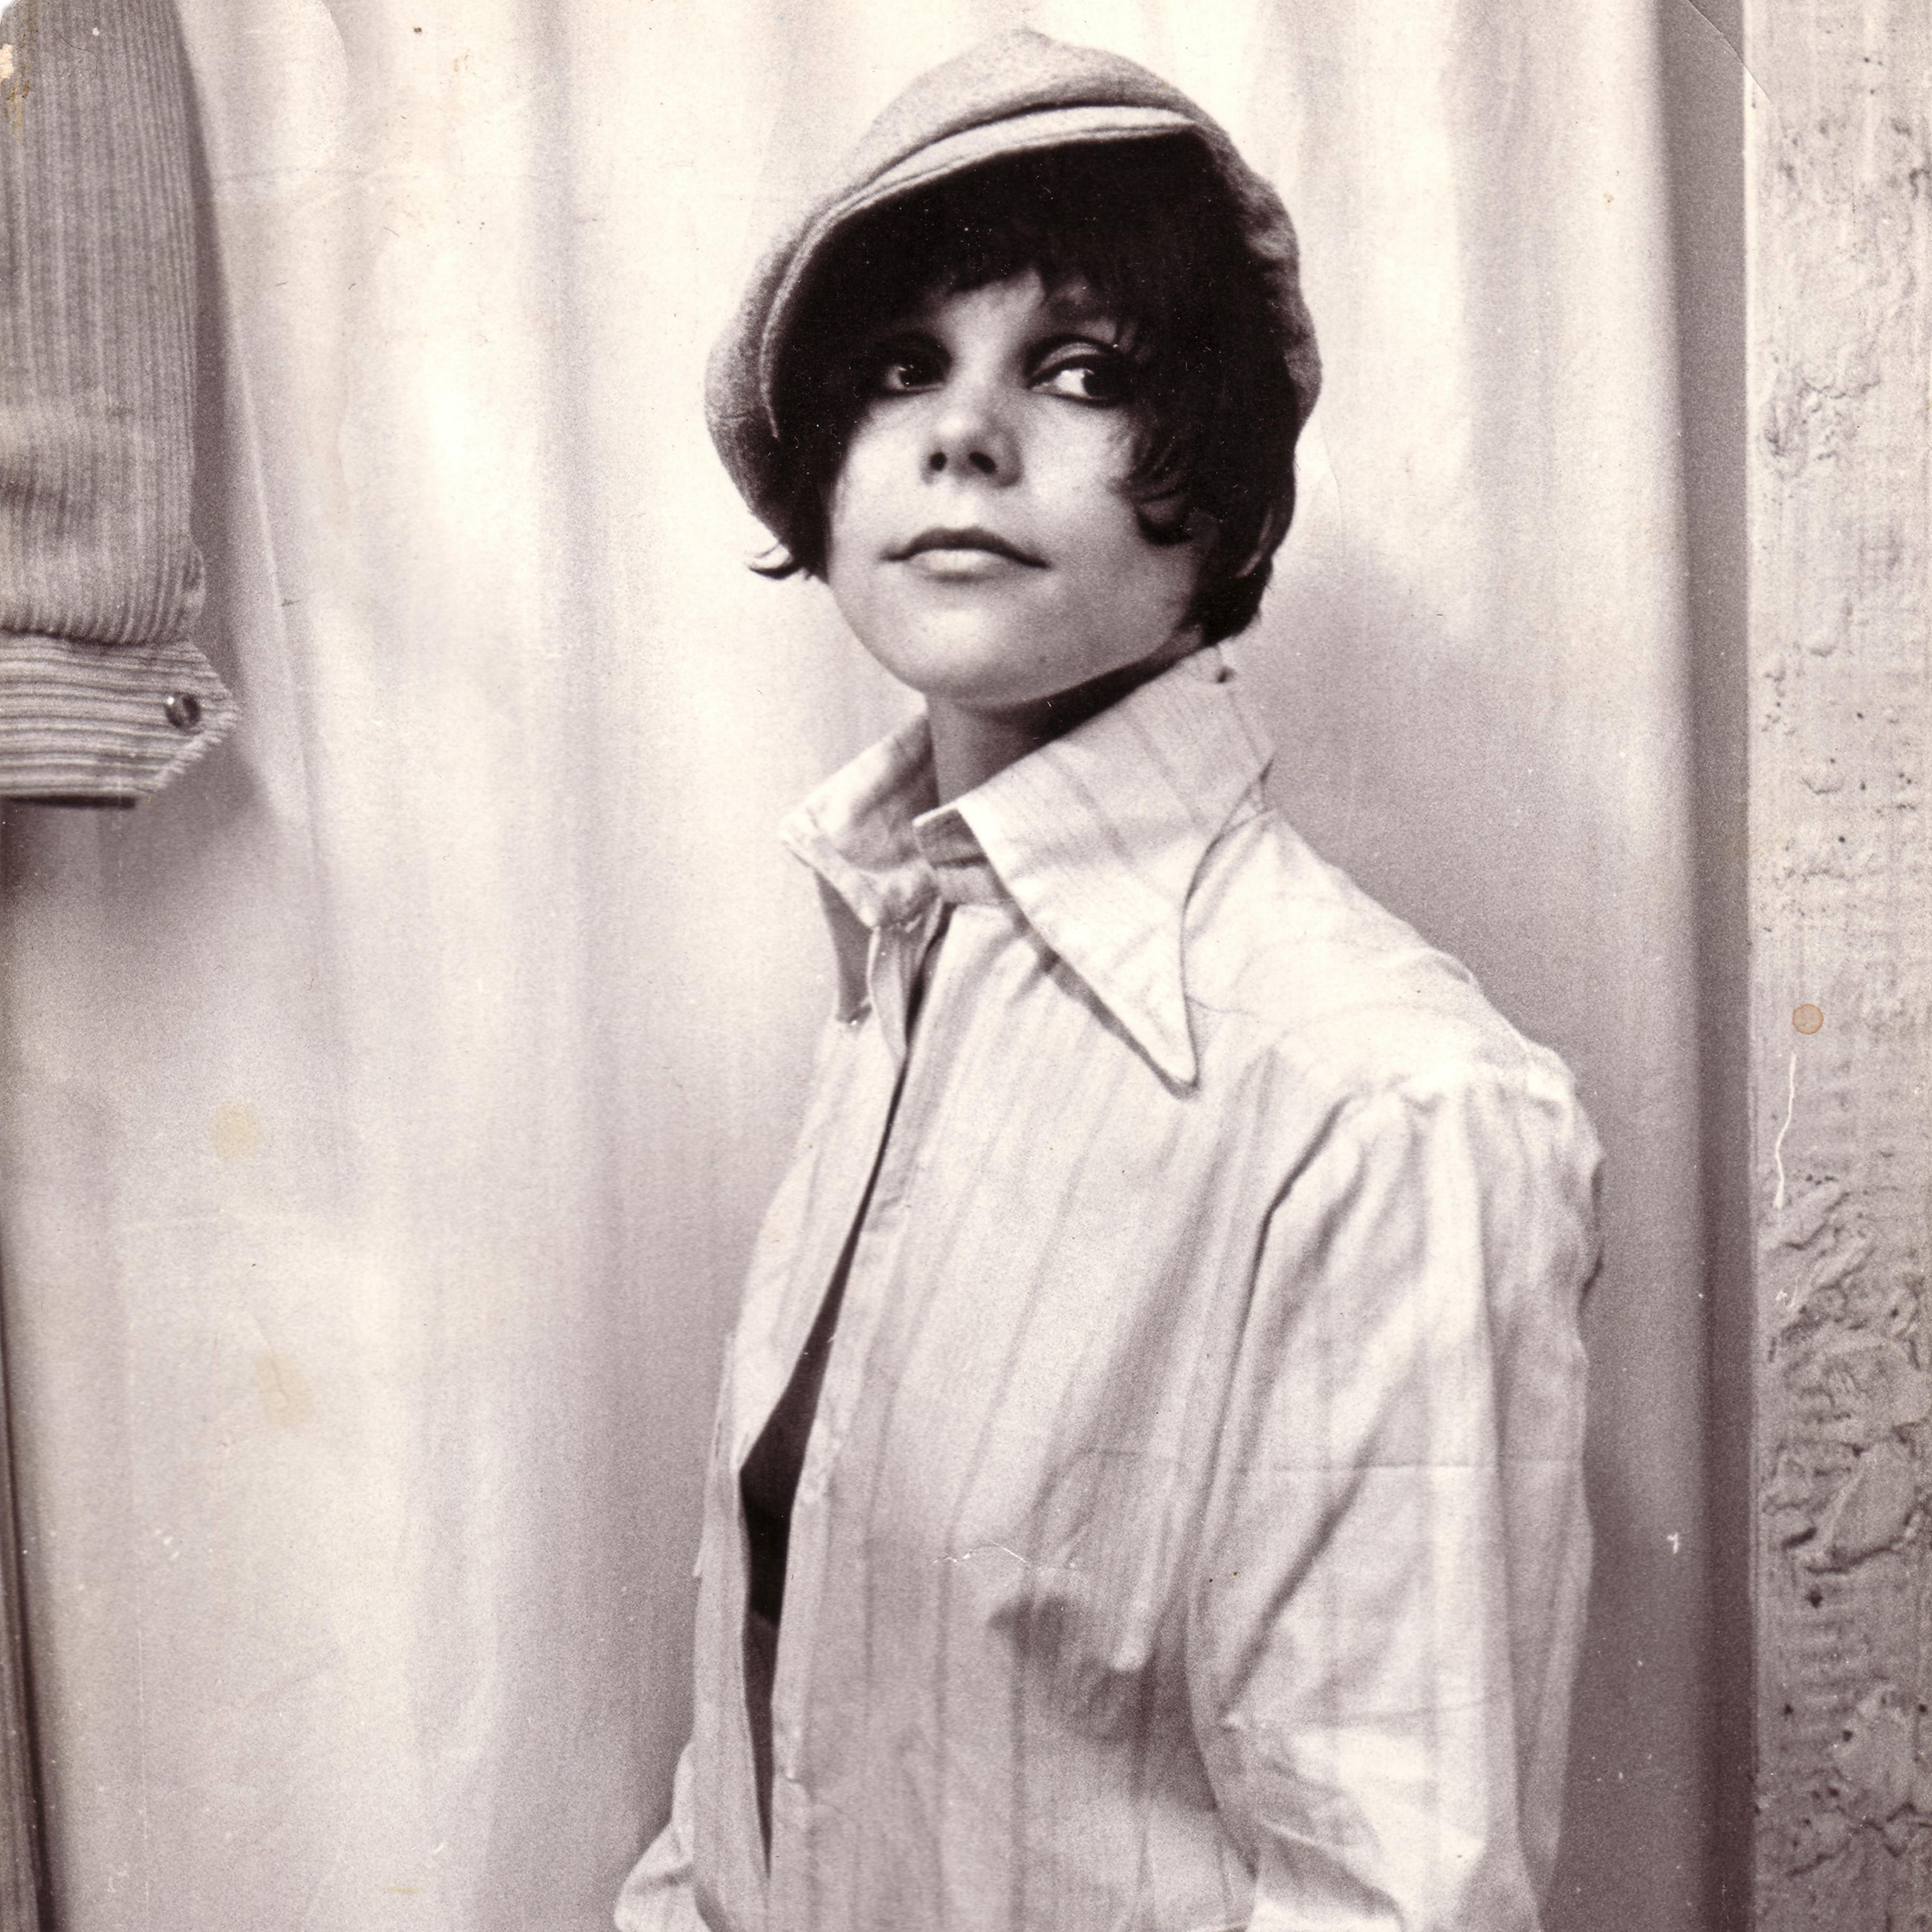 Picture of cannabis legend Mila Jansen that was taken in 1967. Mila has a short haircut, which was fashionable in those days, and is wearing a cap and a man's shirt.